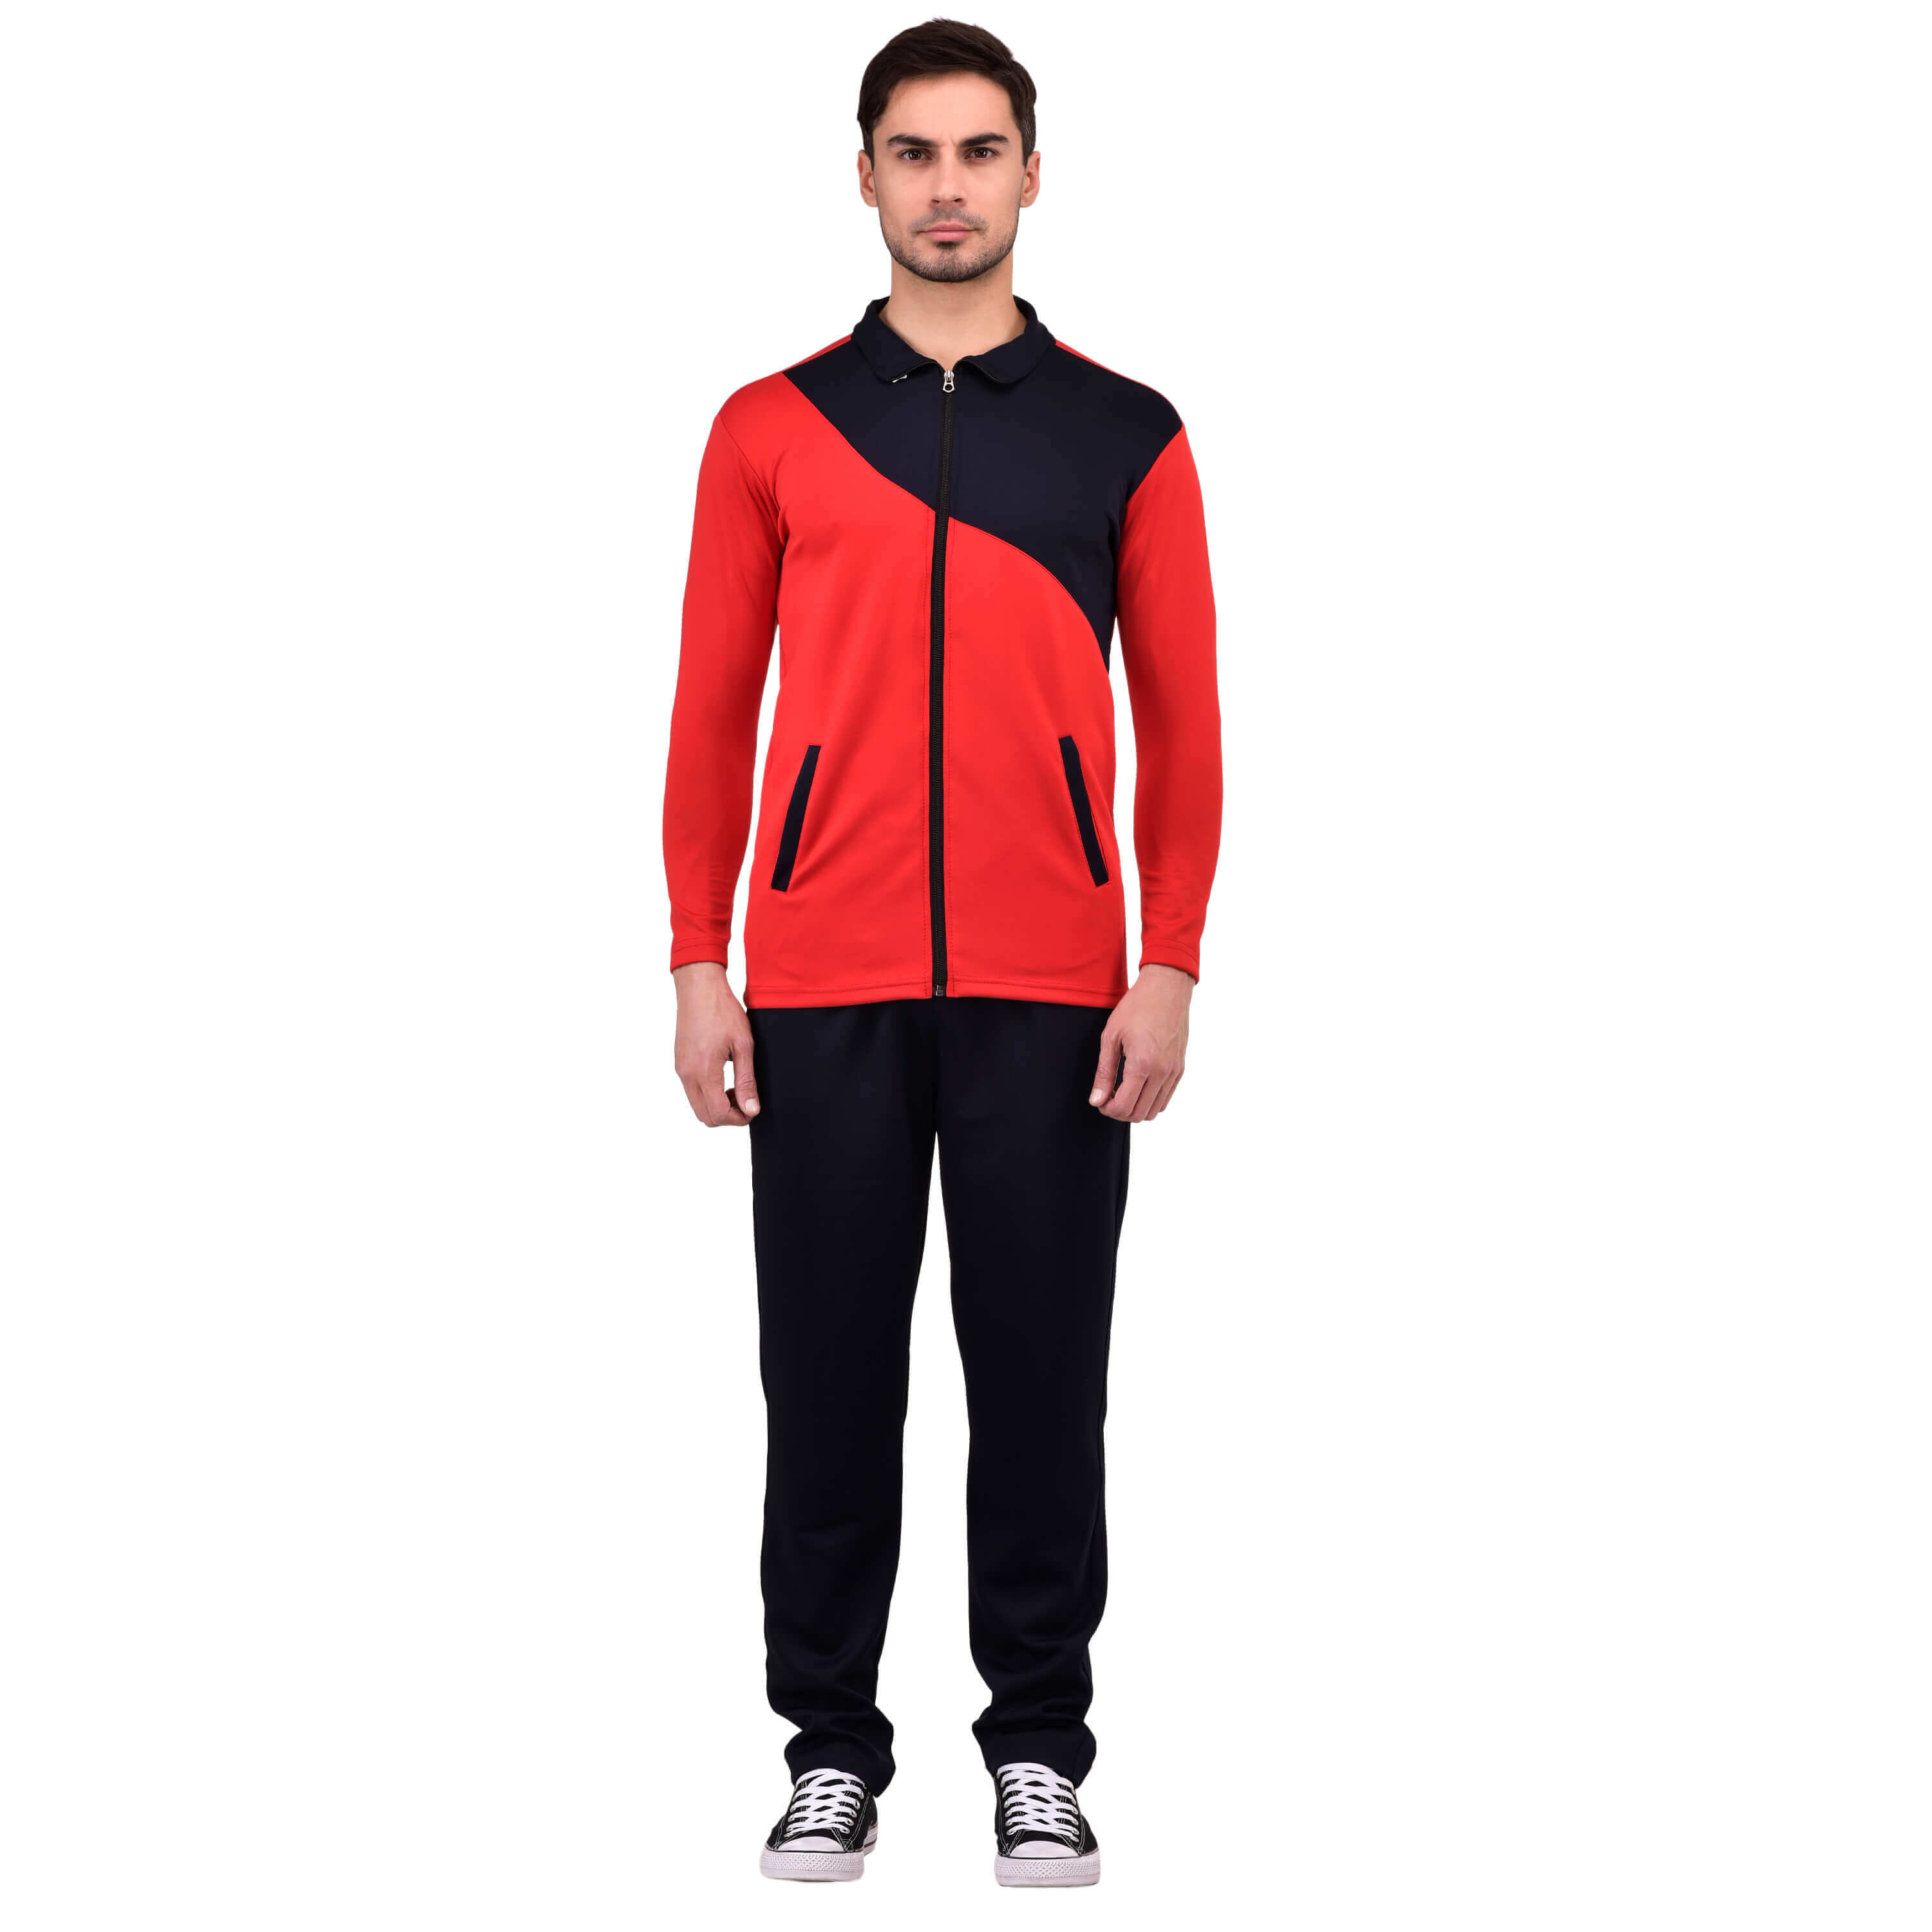 Mens Jogging Suits Manufacturers in Thiruvananthapuram